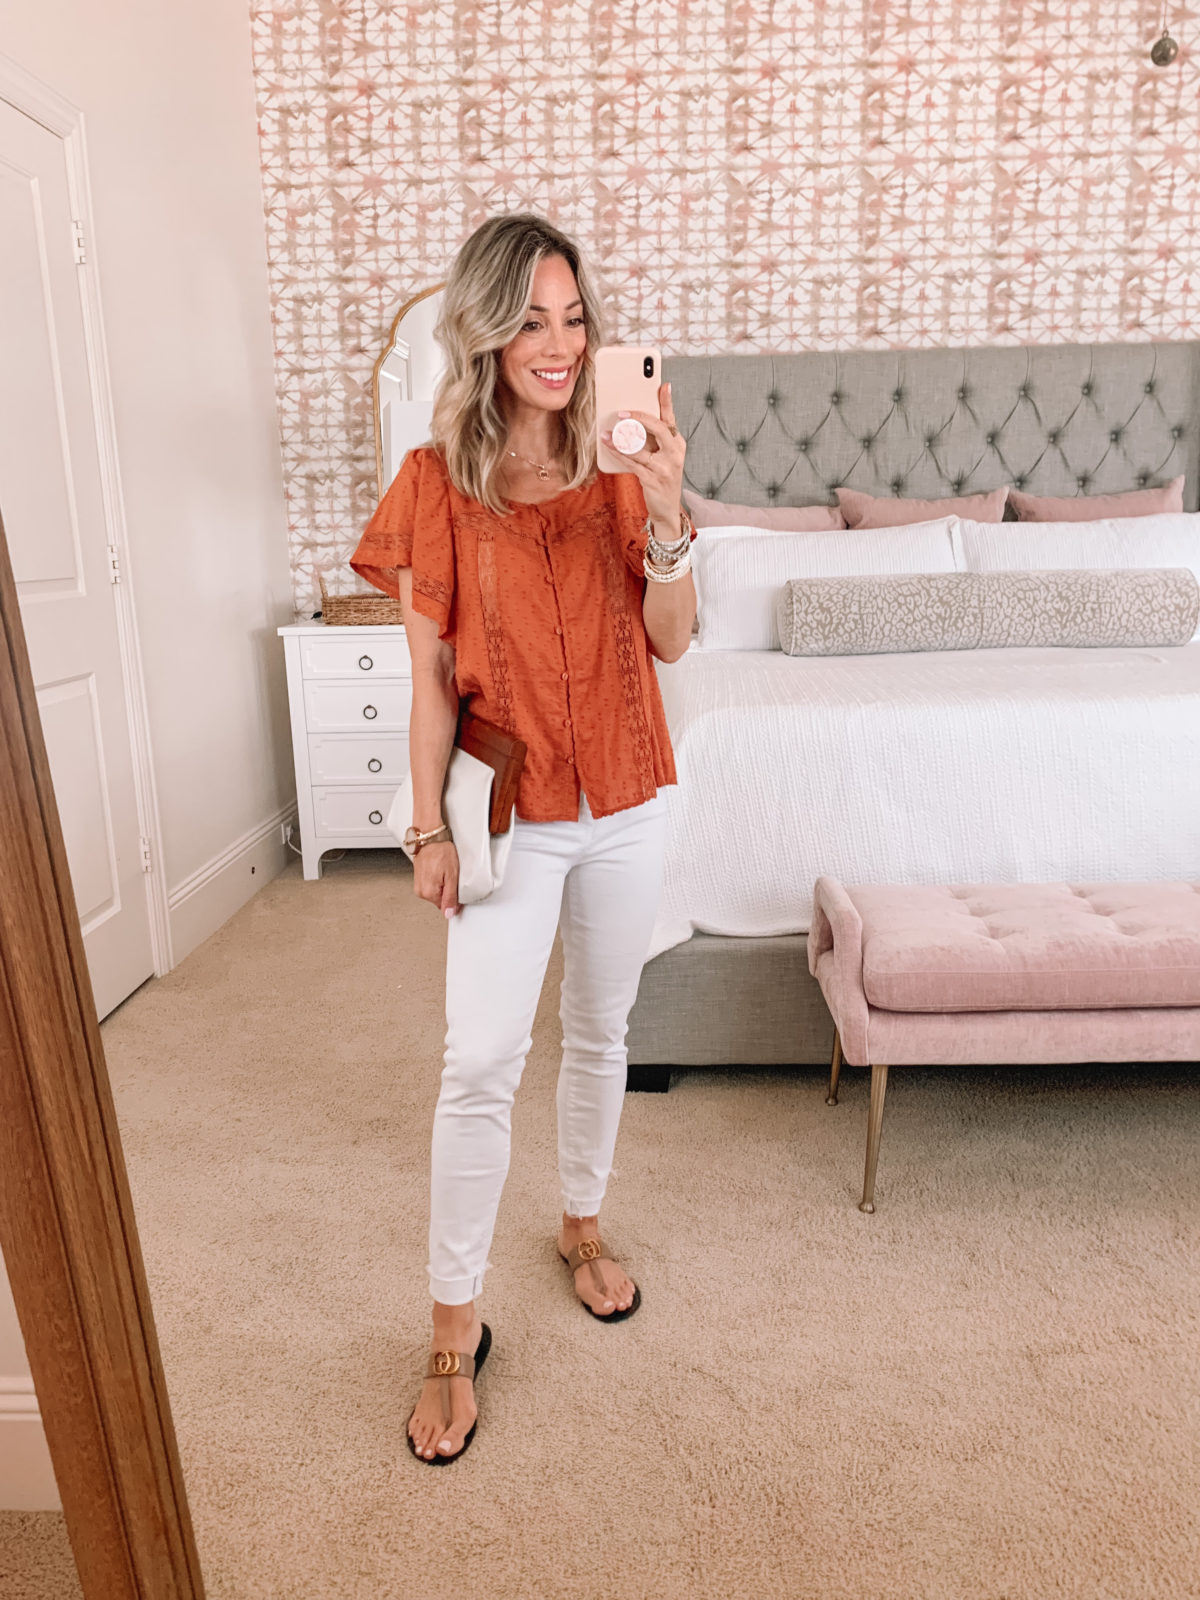 Dressing Room Finds, Rust colored Top and White Jeans with Sandals and Clutch